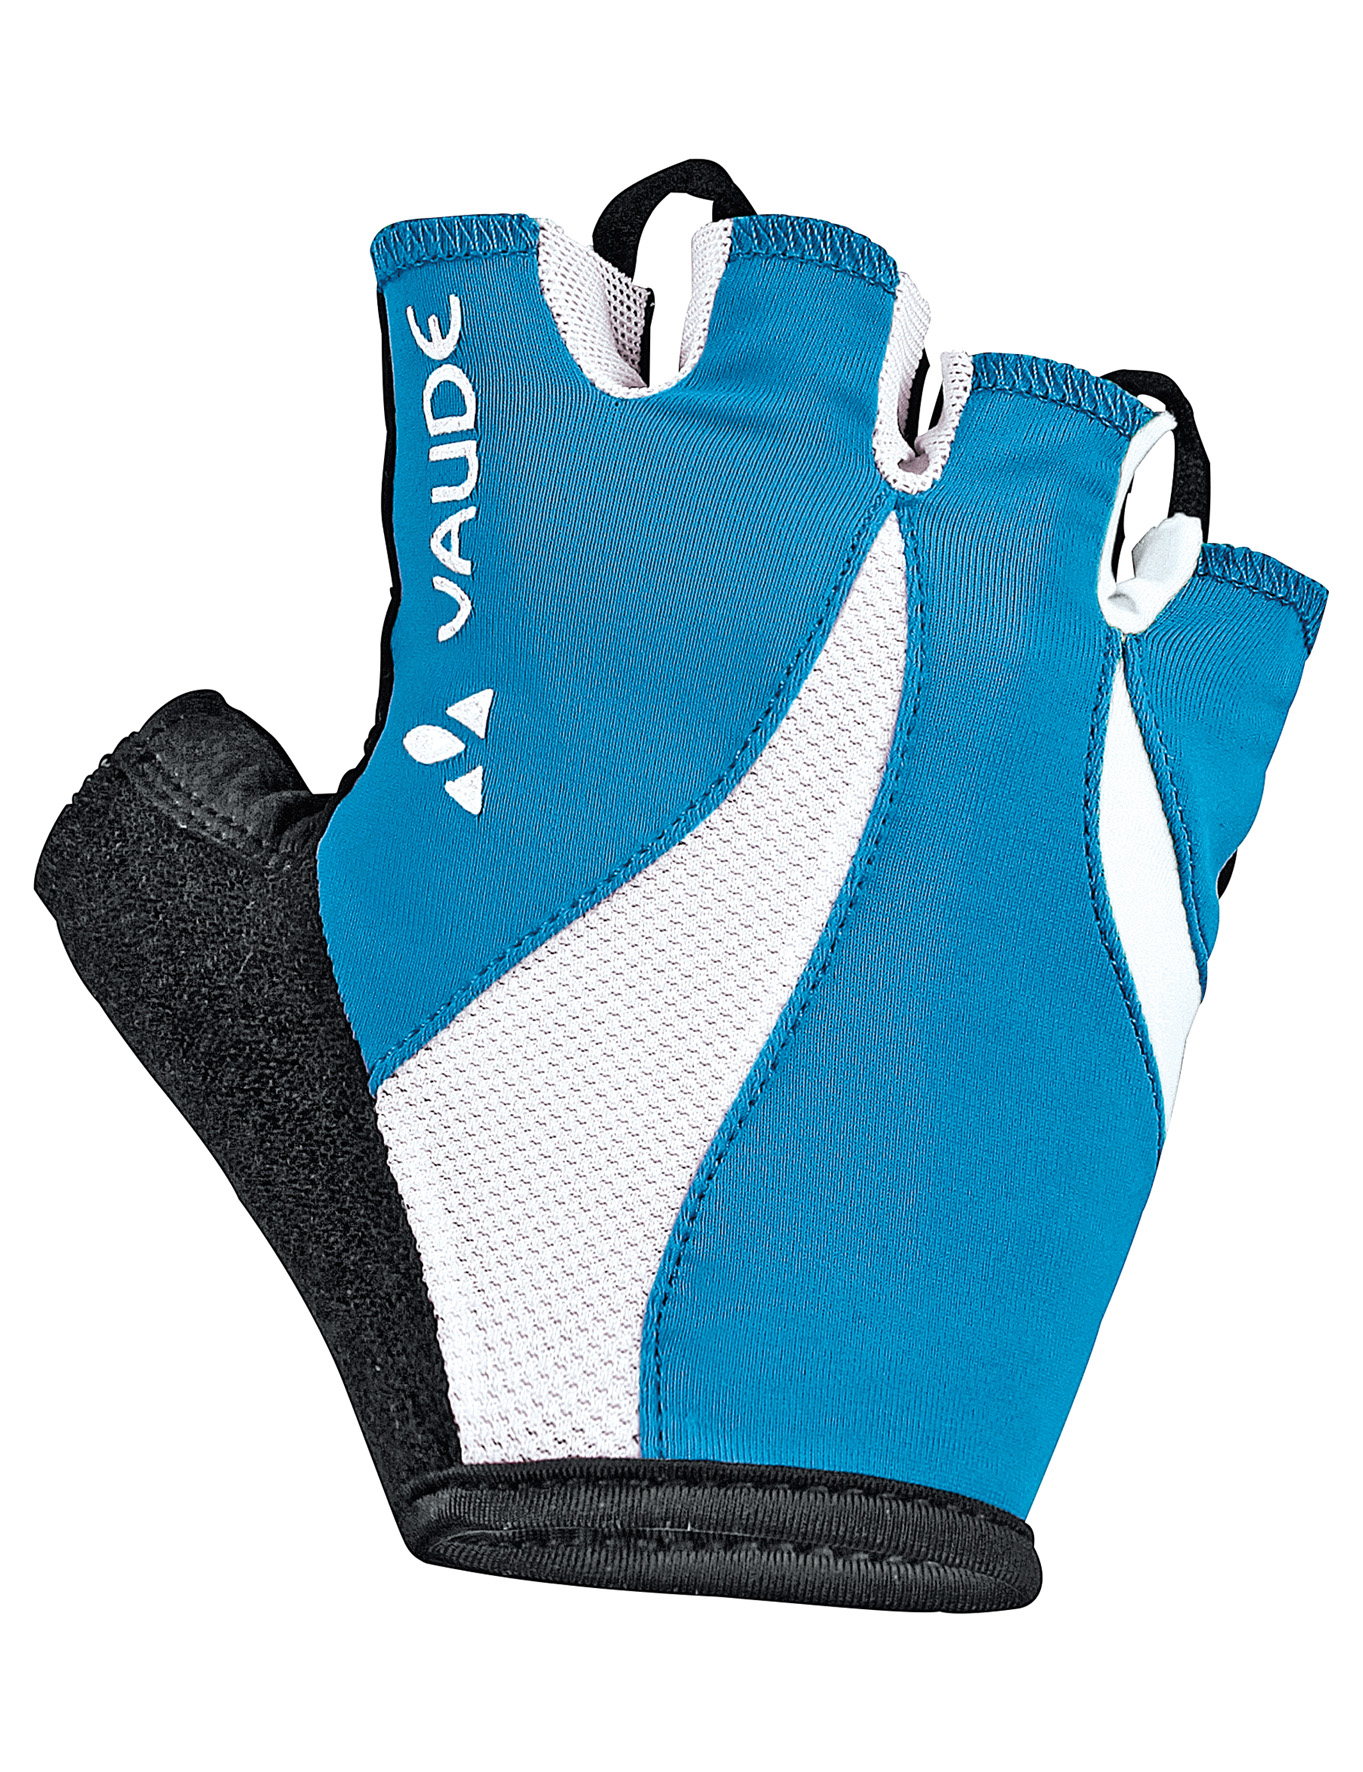 VAUDE Women´s Advanced Gloves spring blue Größe 5 - VAUDE Women´s Advanced Gloves spring blue Größe 5